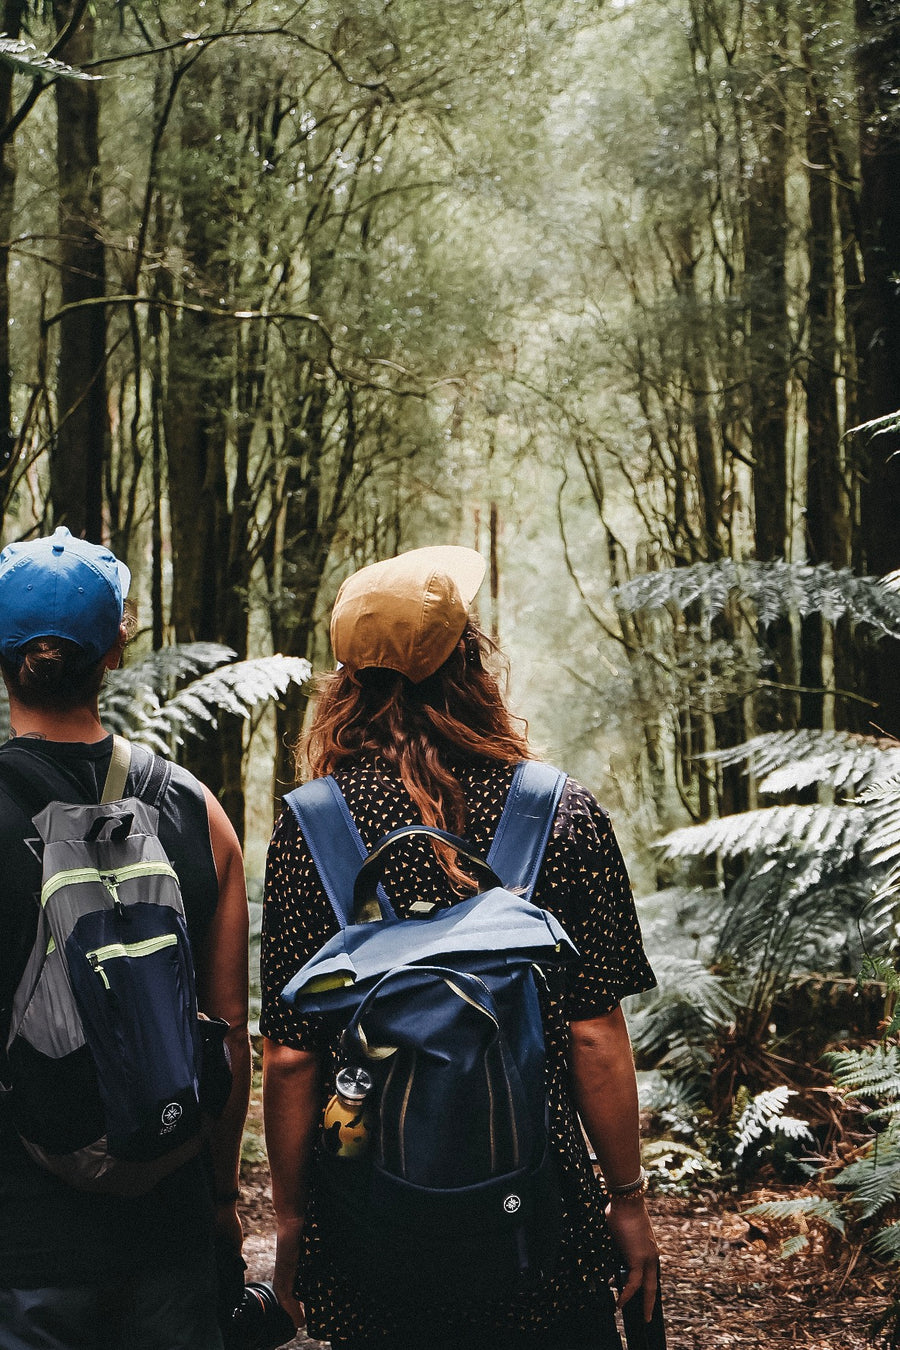 Two friends hike through the forest Hike & Seek 12 Apostles, Otways & Great Ocean Road Tour